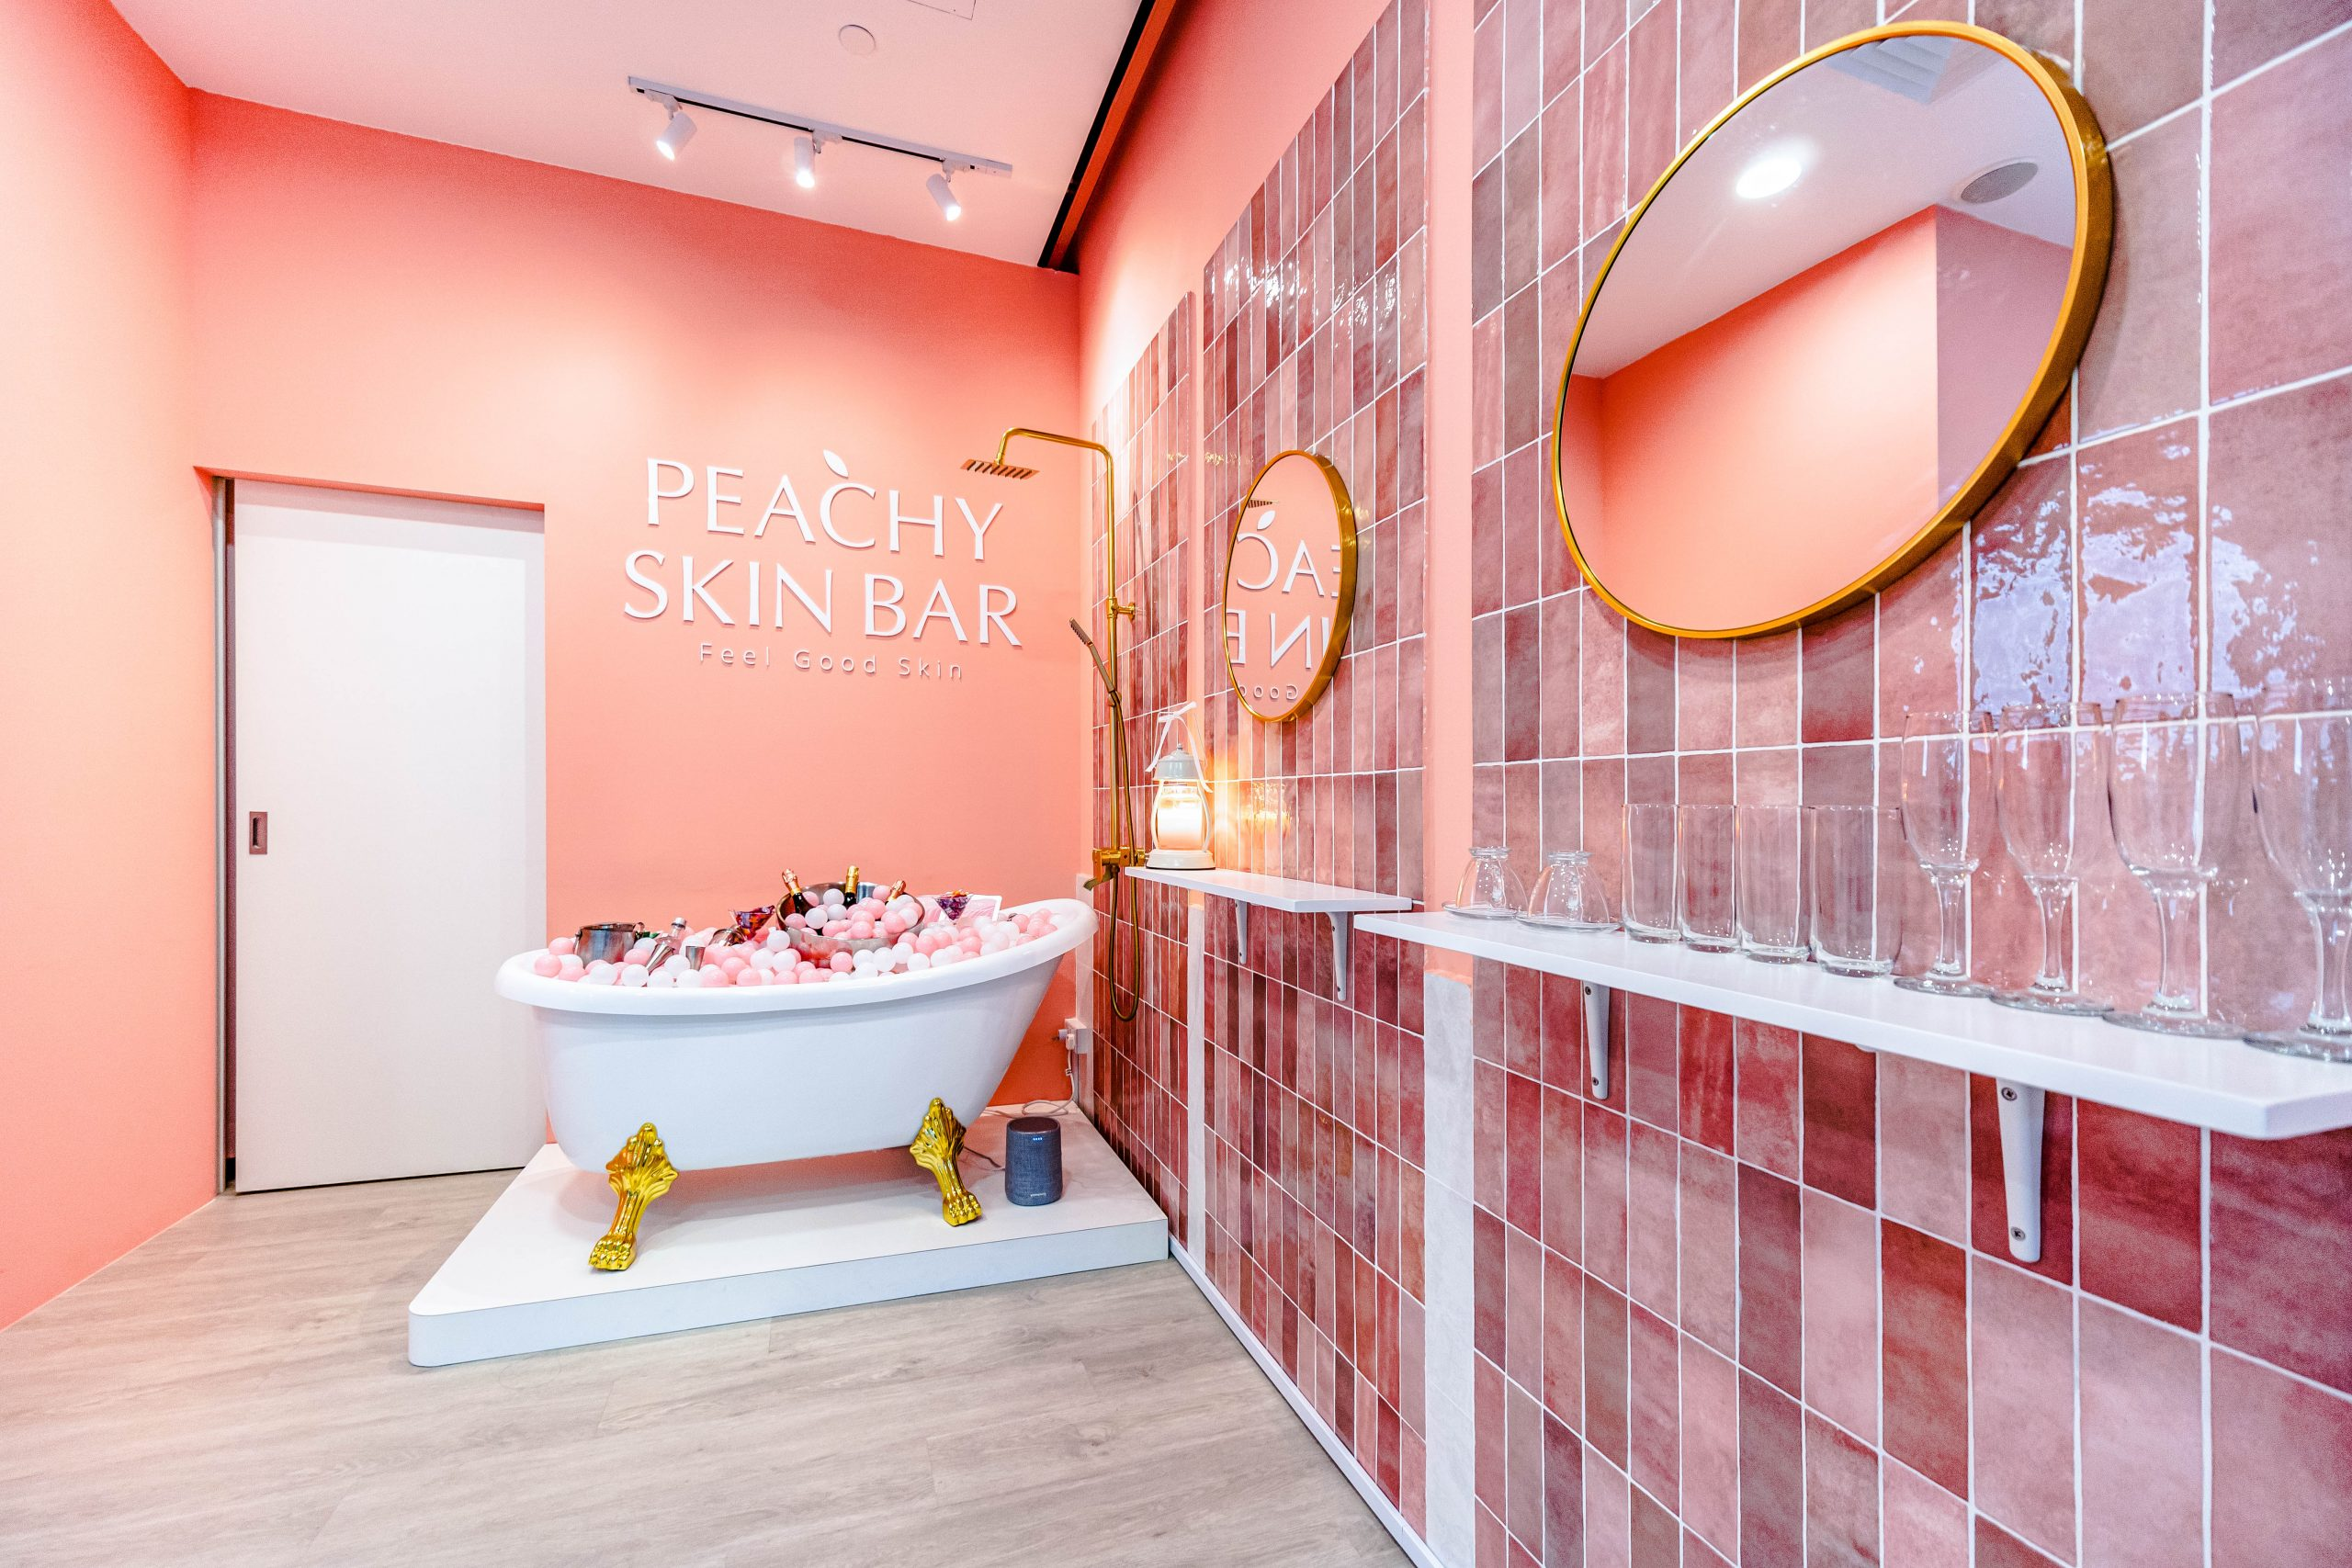 Peachy Skin Bar 2nd Outlet Designed by Lucas Ong